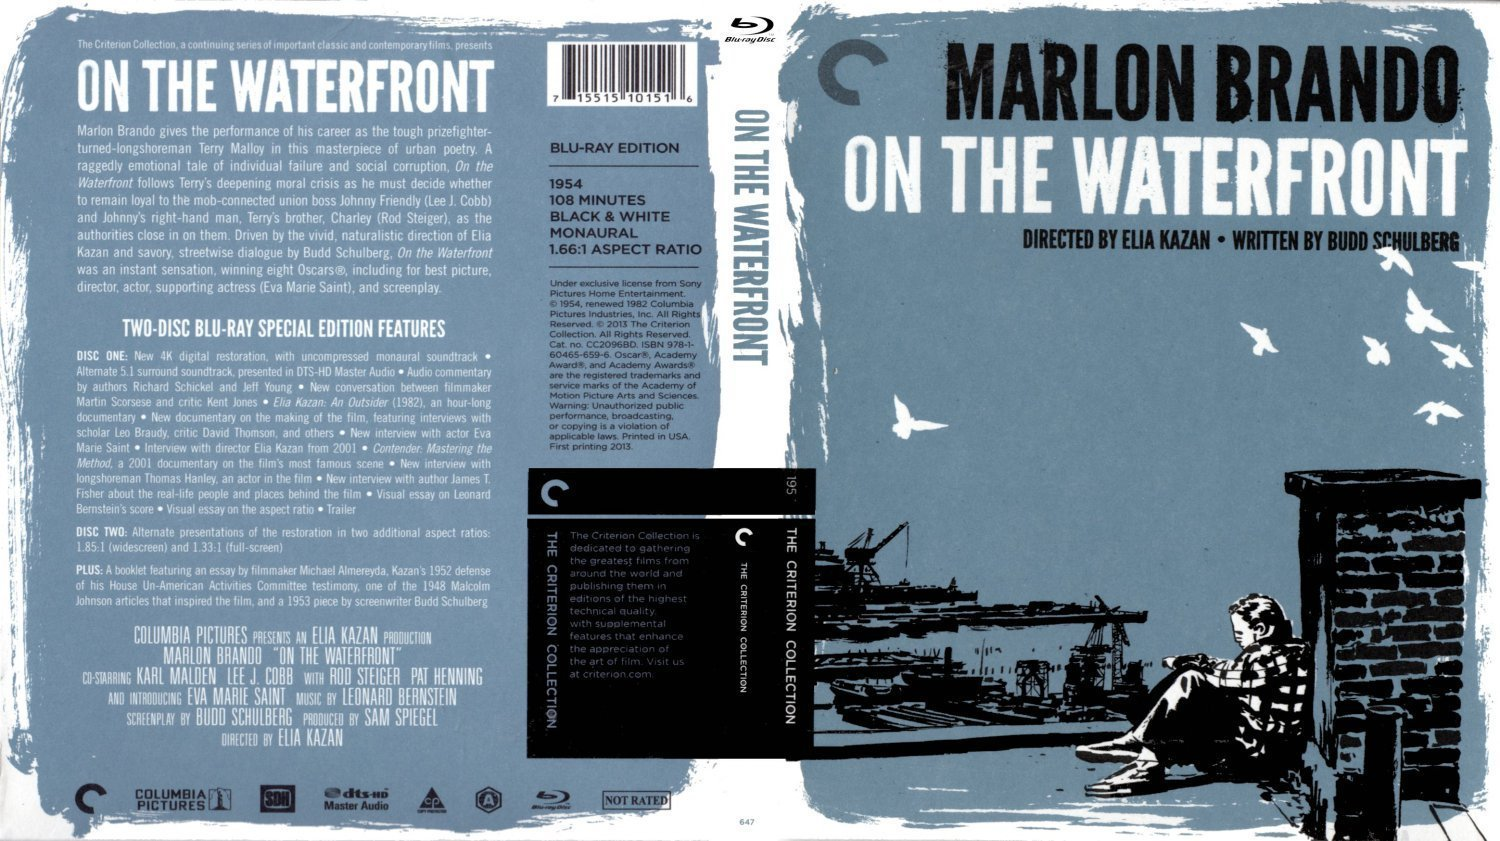 on the waterfront good and evil essay A summary of themes in 's on the waterfront learn exactly what happened in this chapter, scene, or section of on the waterfront and what it means perfect for acing essays, tests, and quizzes, as well as for writing lesson plans.